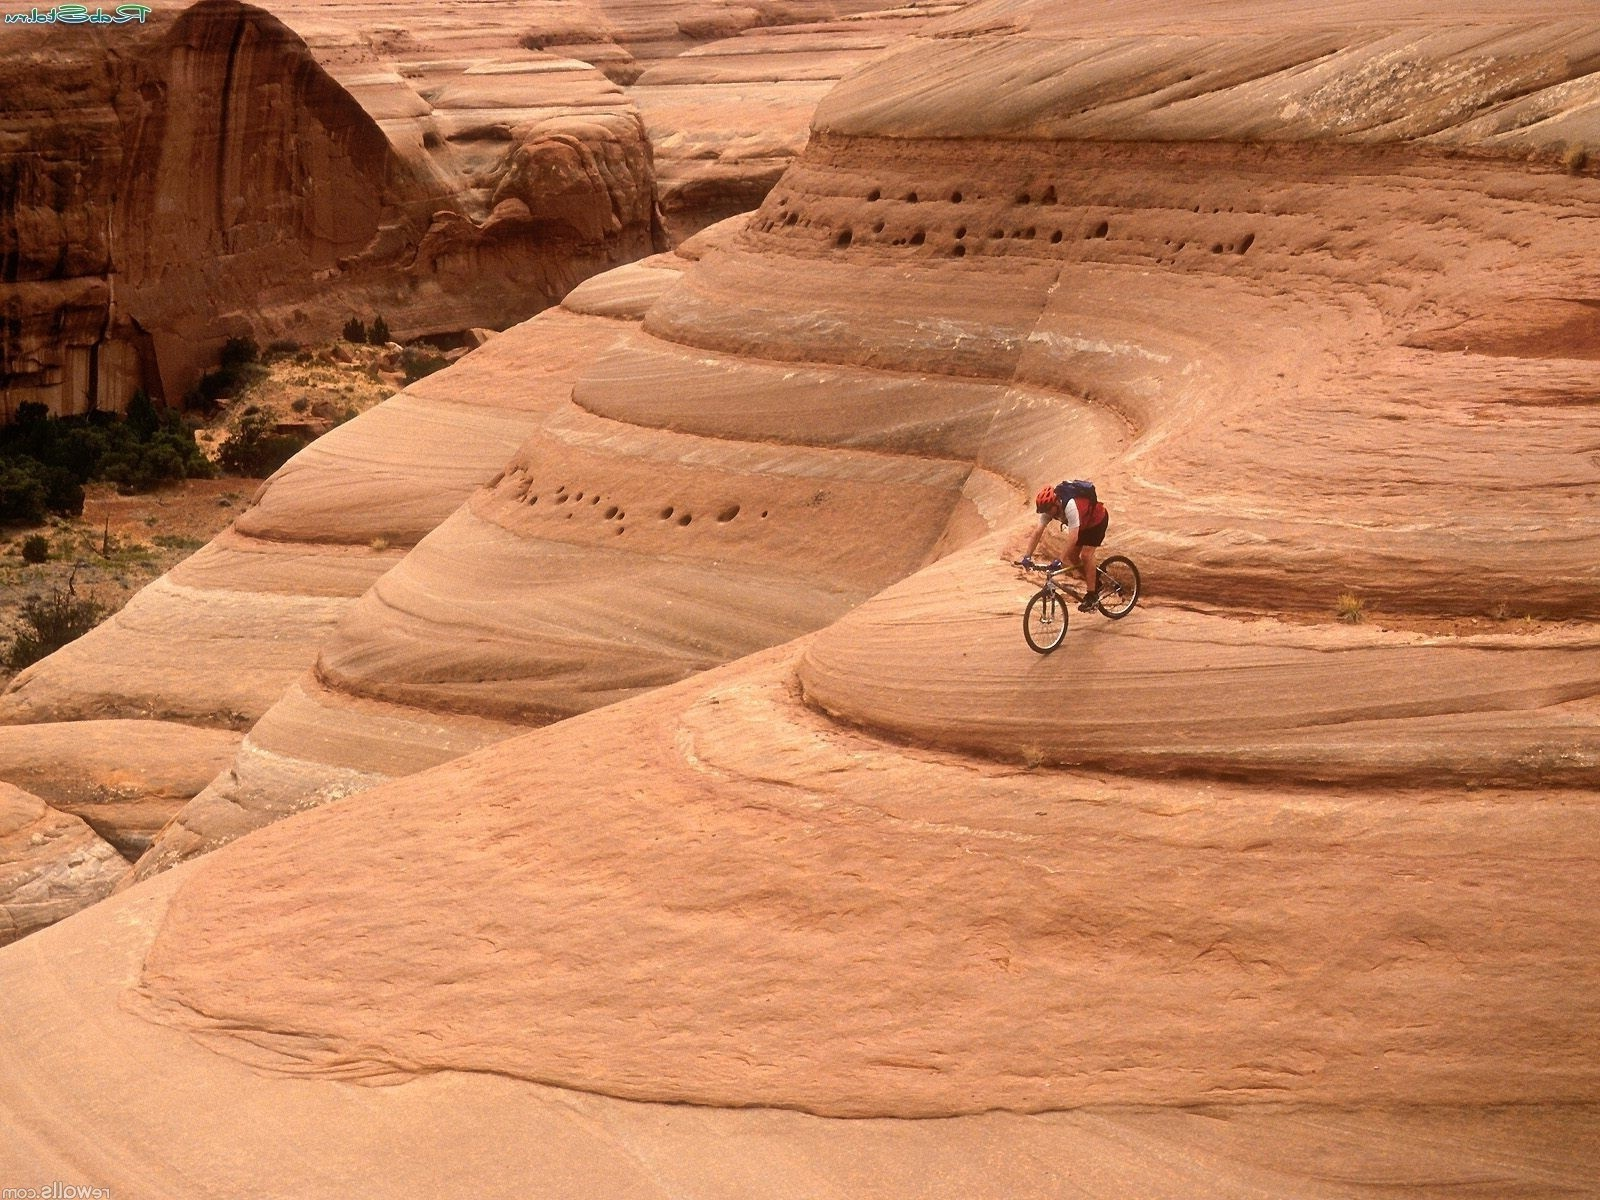 cycling desert travel outdoors sand one adventure recreation adult landscape arid